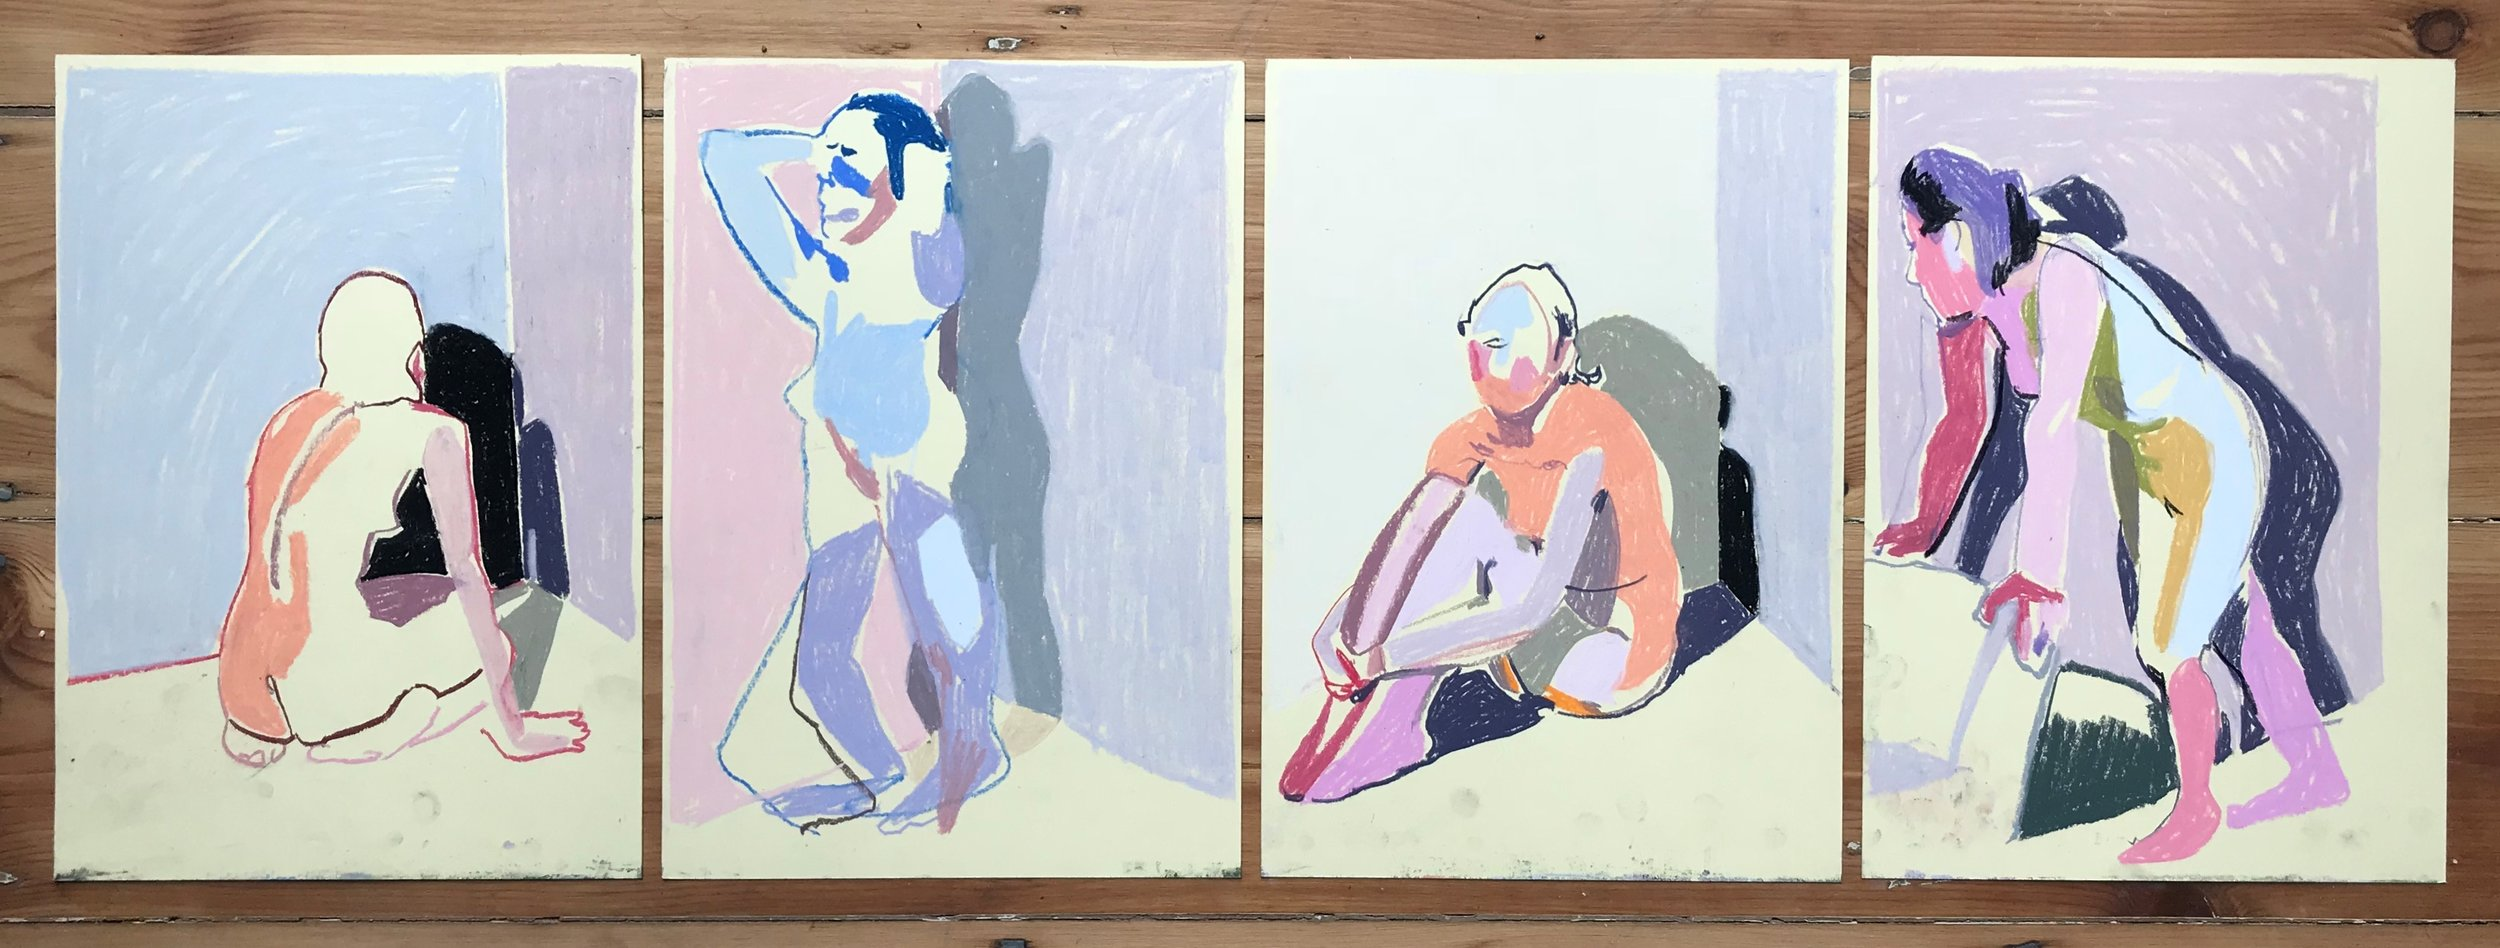 'Sequence of four nudes on soft yellow'', 2018, pastel 29.6 x 21cm each, SOLD  (click to enlarge)